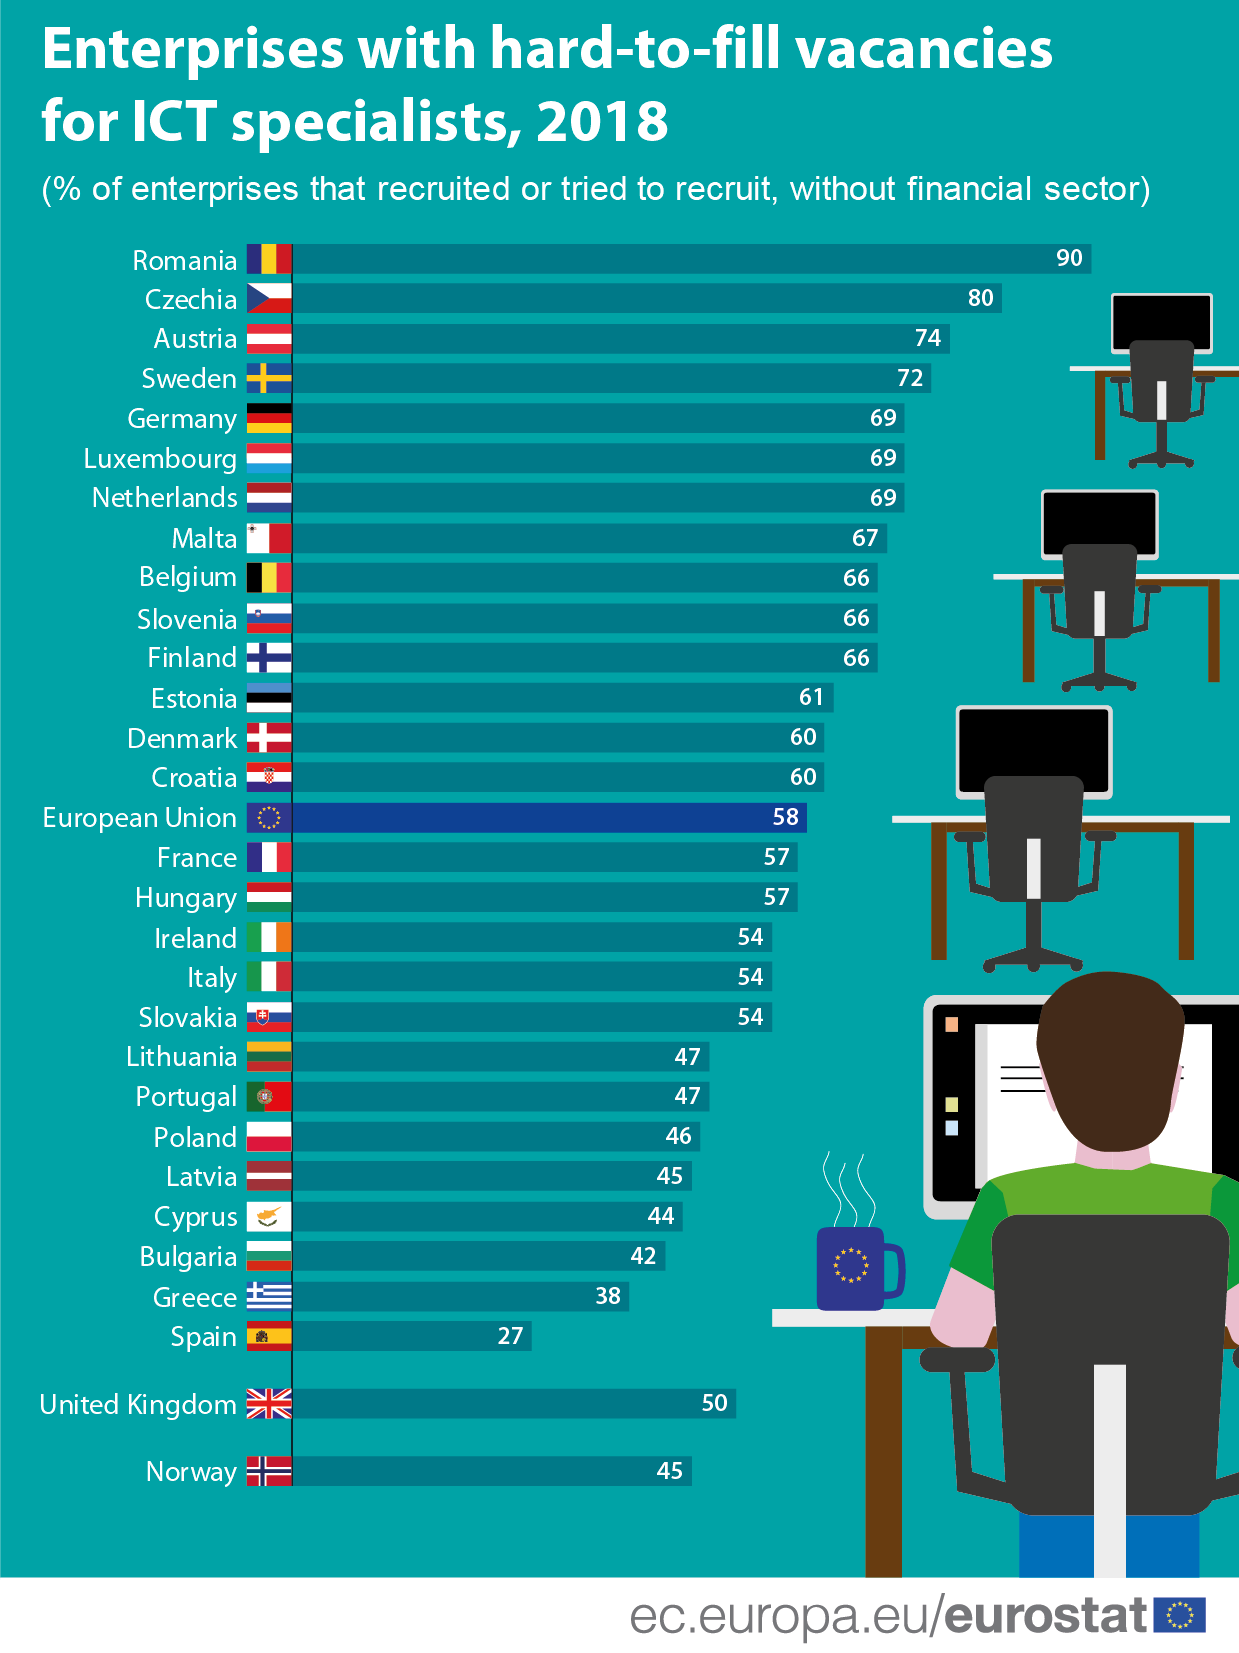 Bar chart: Enterprises with hard-to-fill vacancies for ICT specialists, by country, 2018